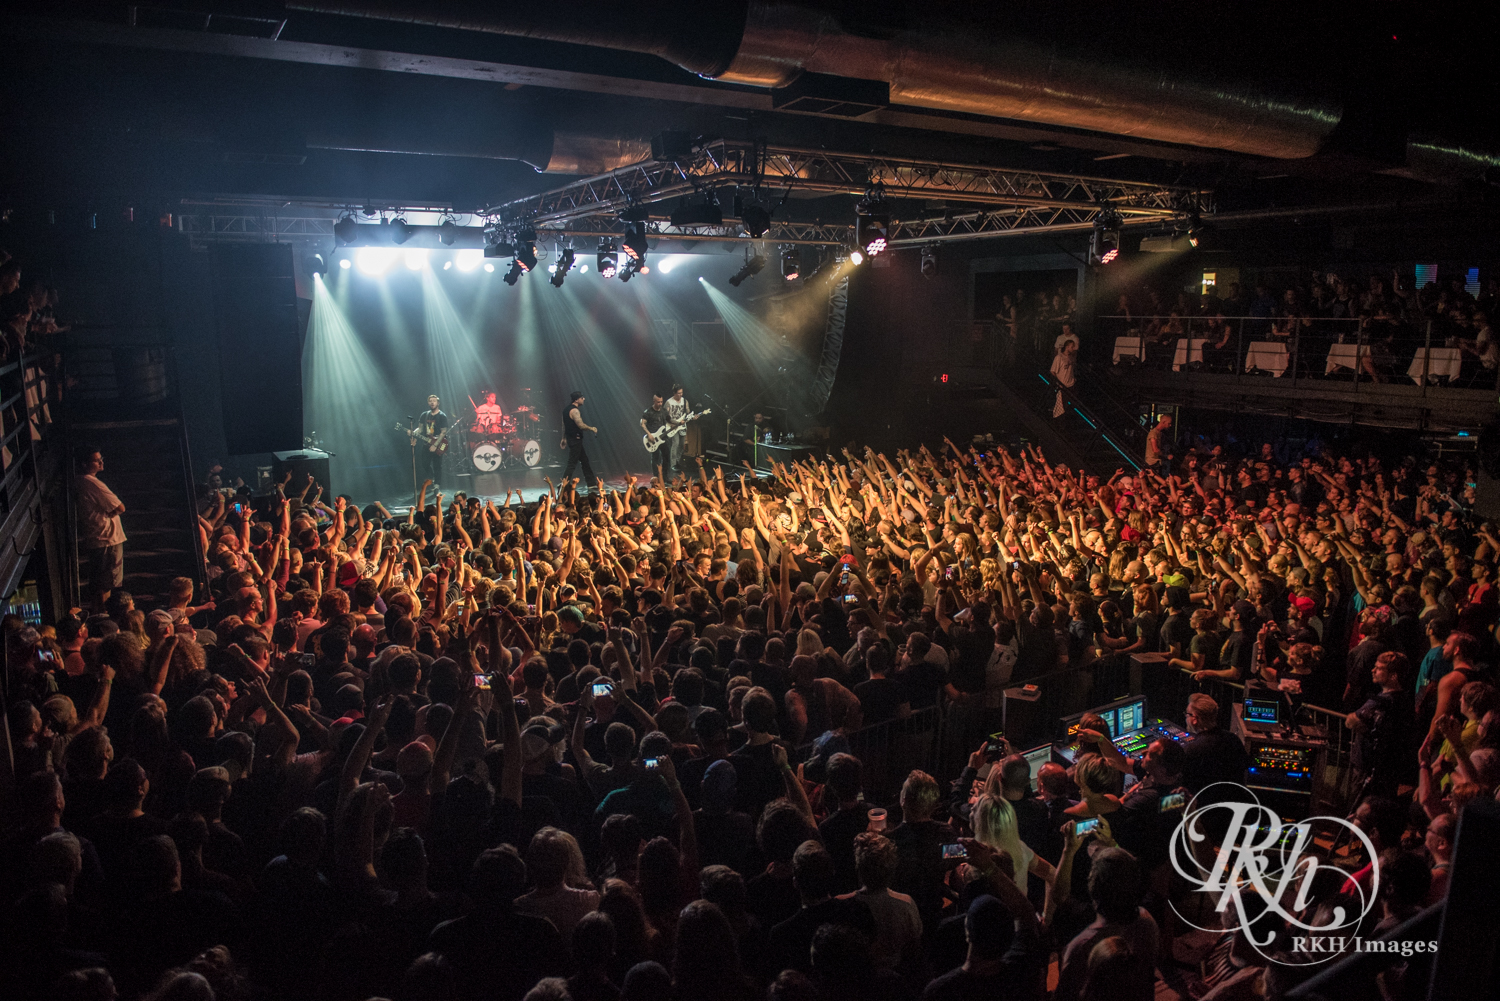 a7x rkh images (46 of 52).jpg